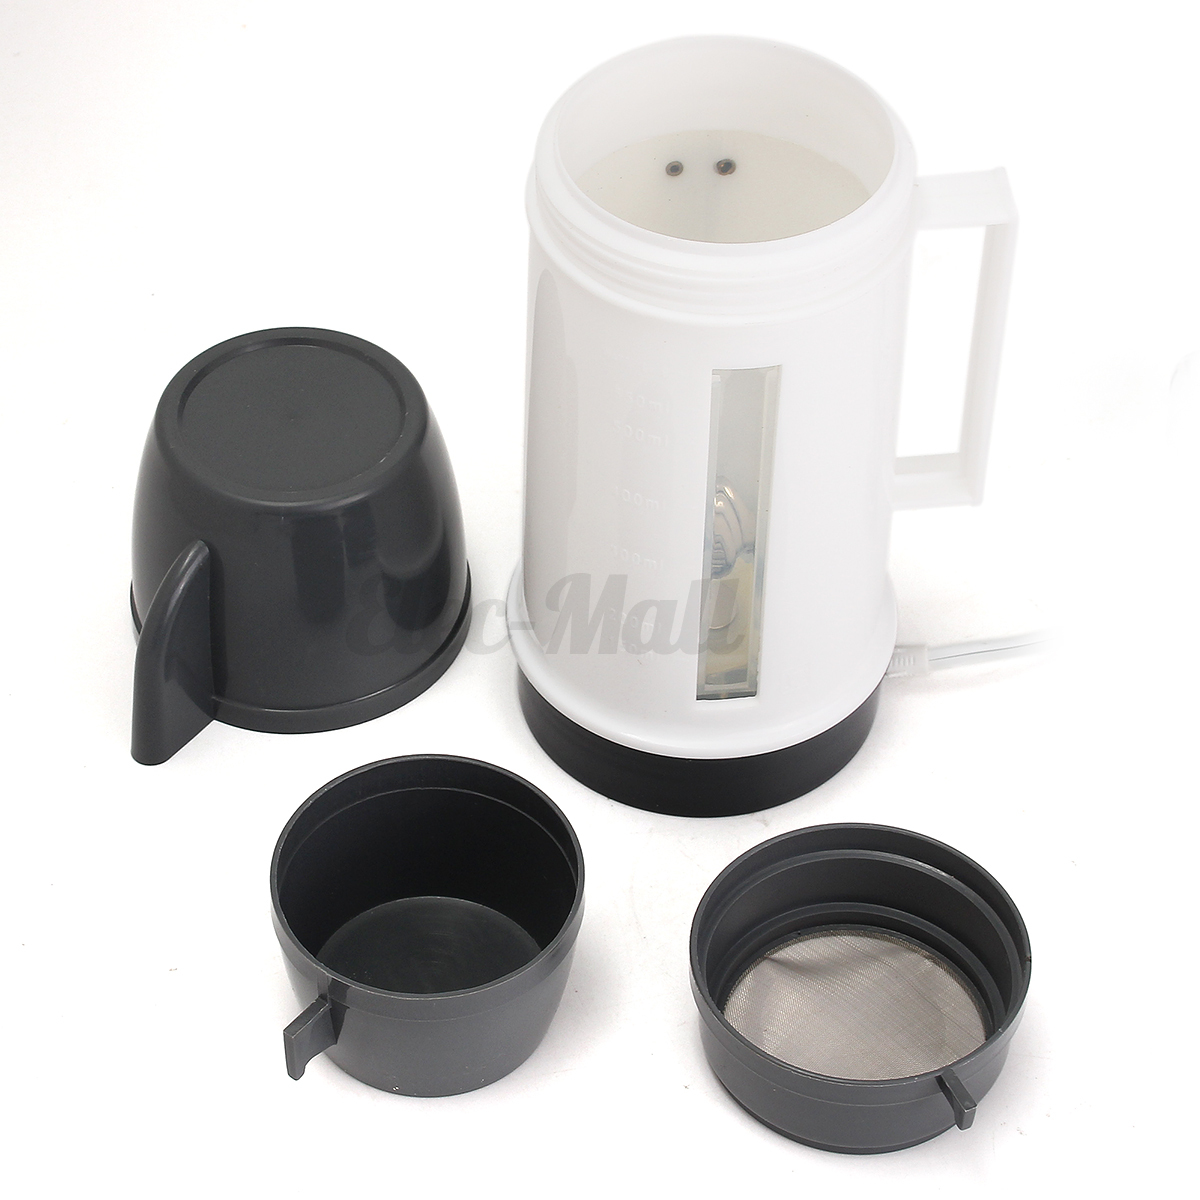 12v Portable Car Mains Water Heater Travel Coffee Warm